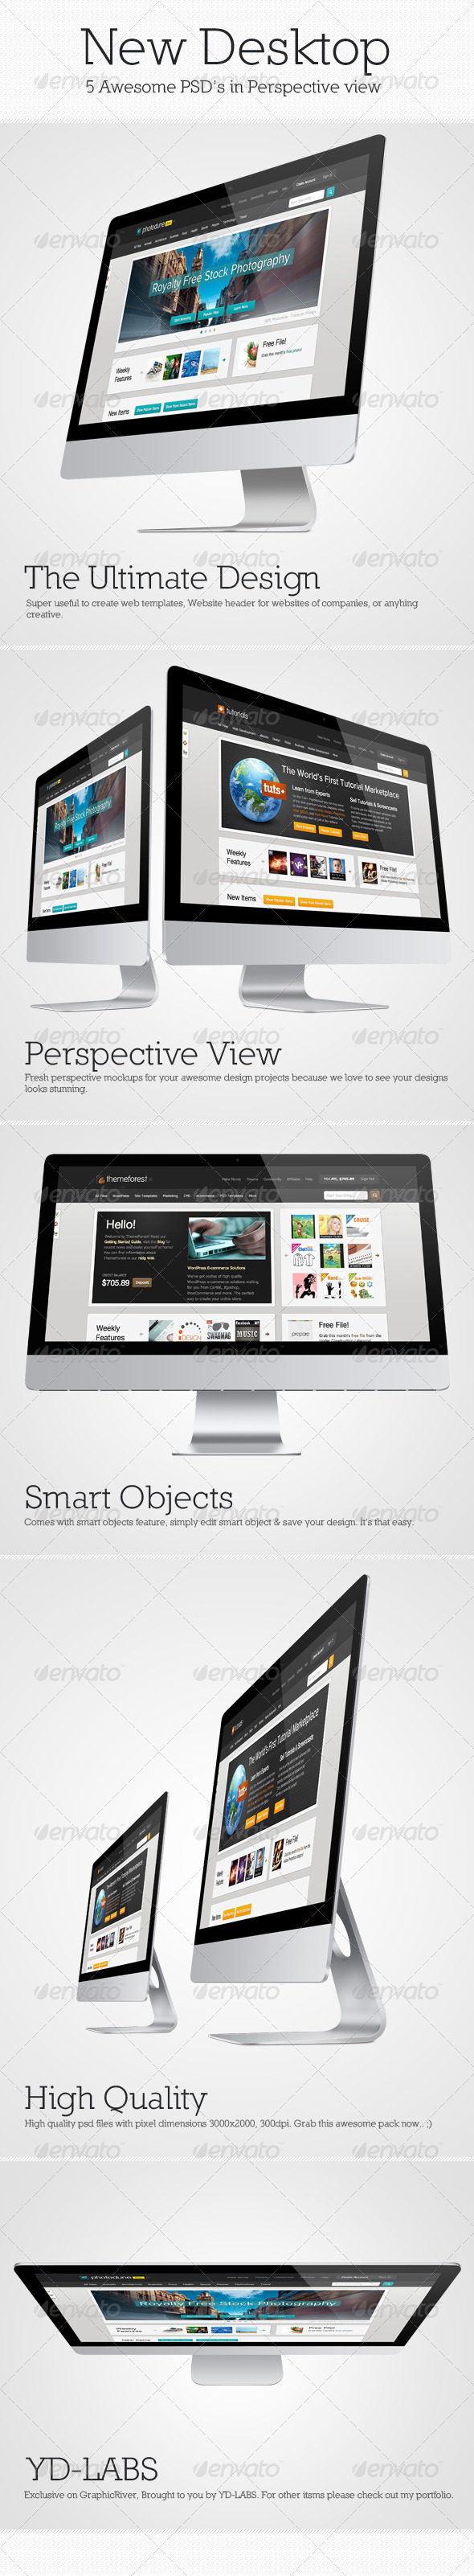 GraphicRiver New Desktop Mockup Pack 3288338